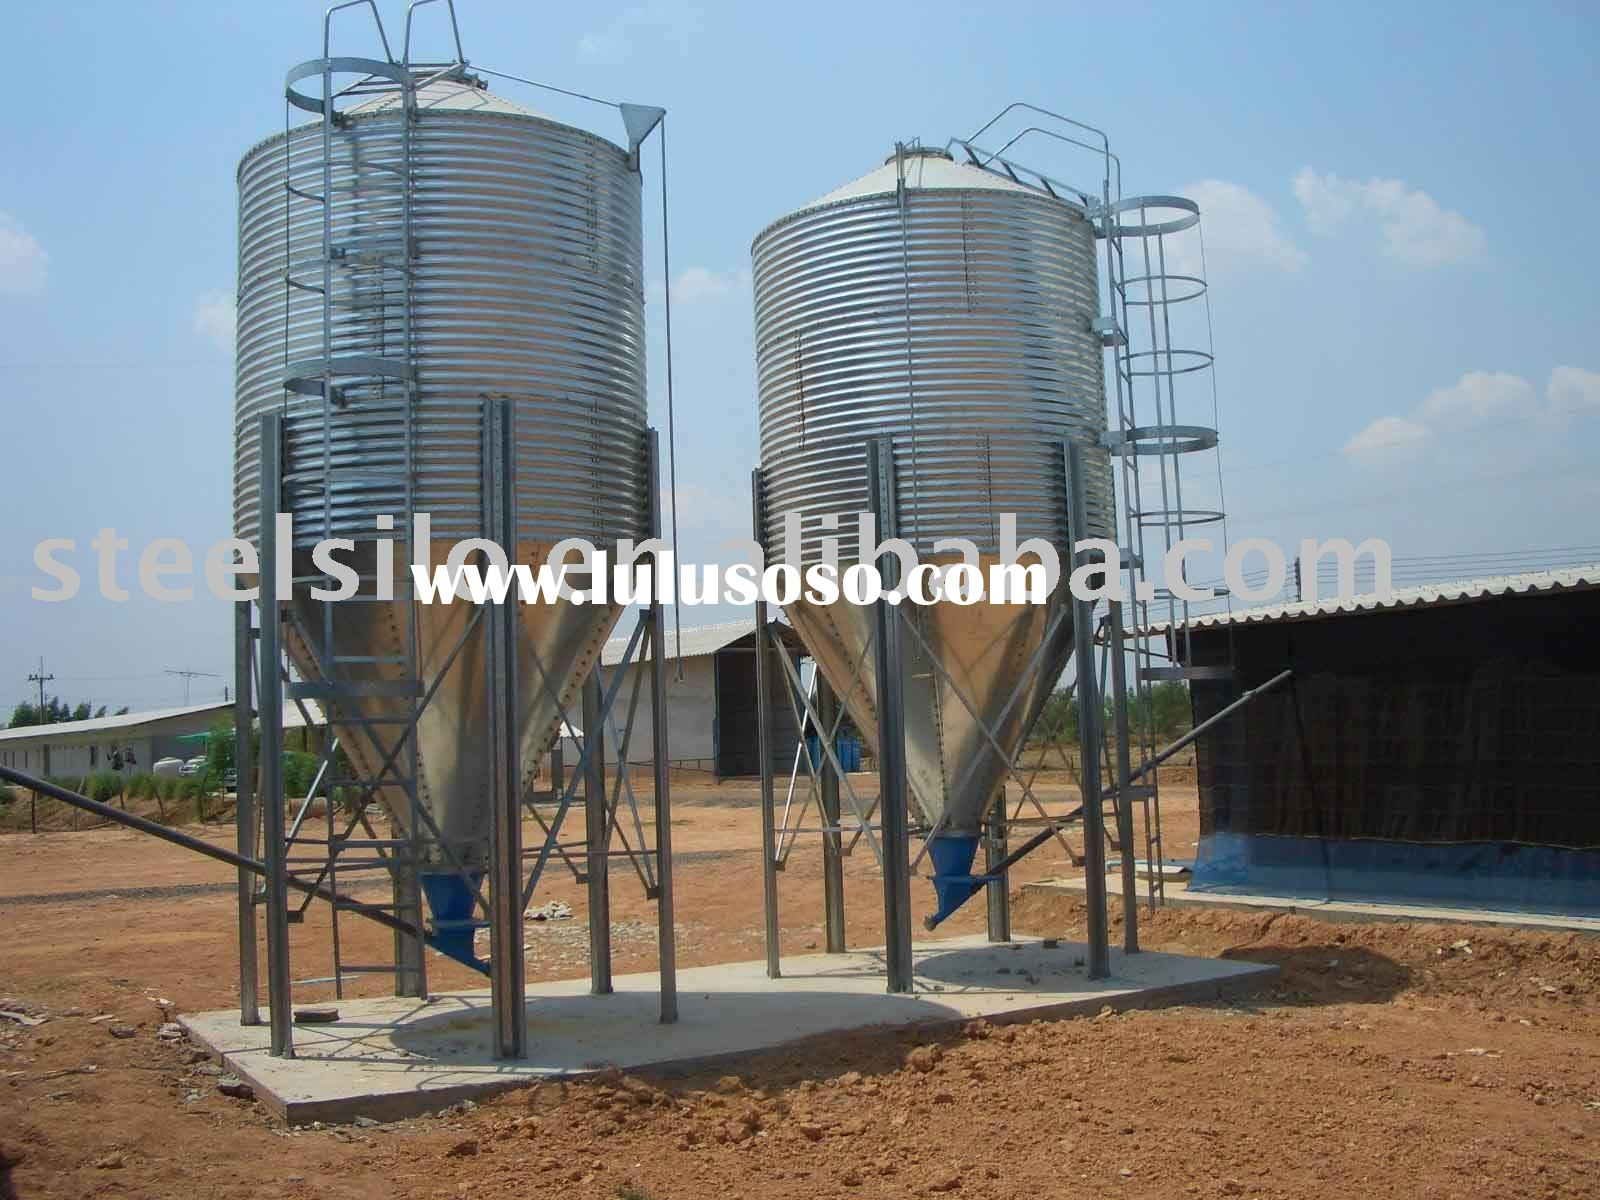 Feed Bin - Hopper Bottom Steel Silo